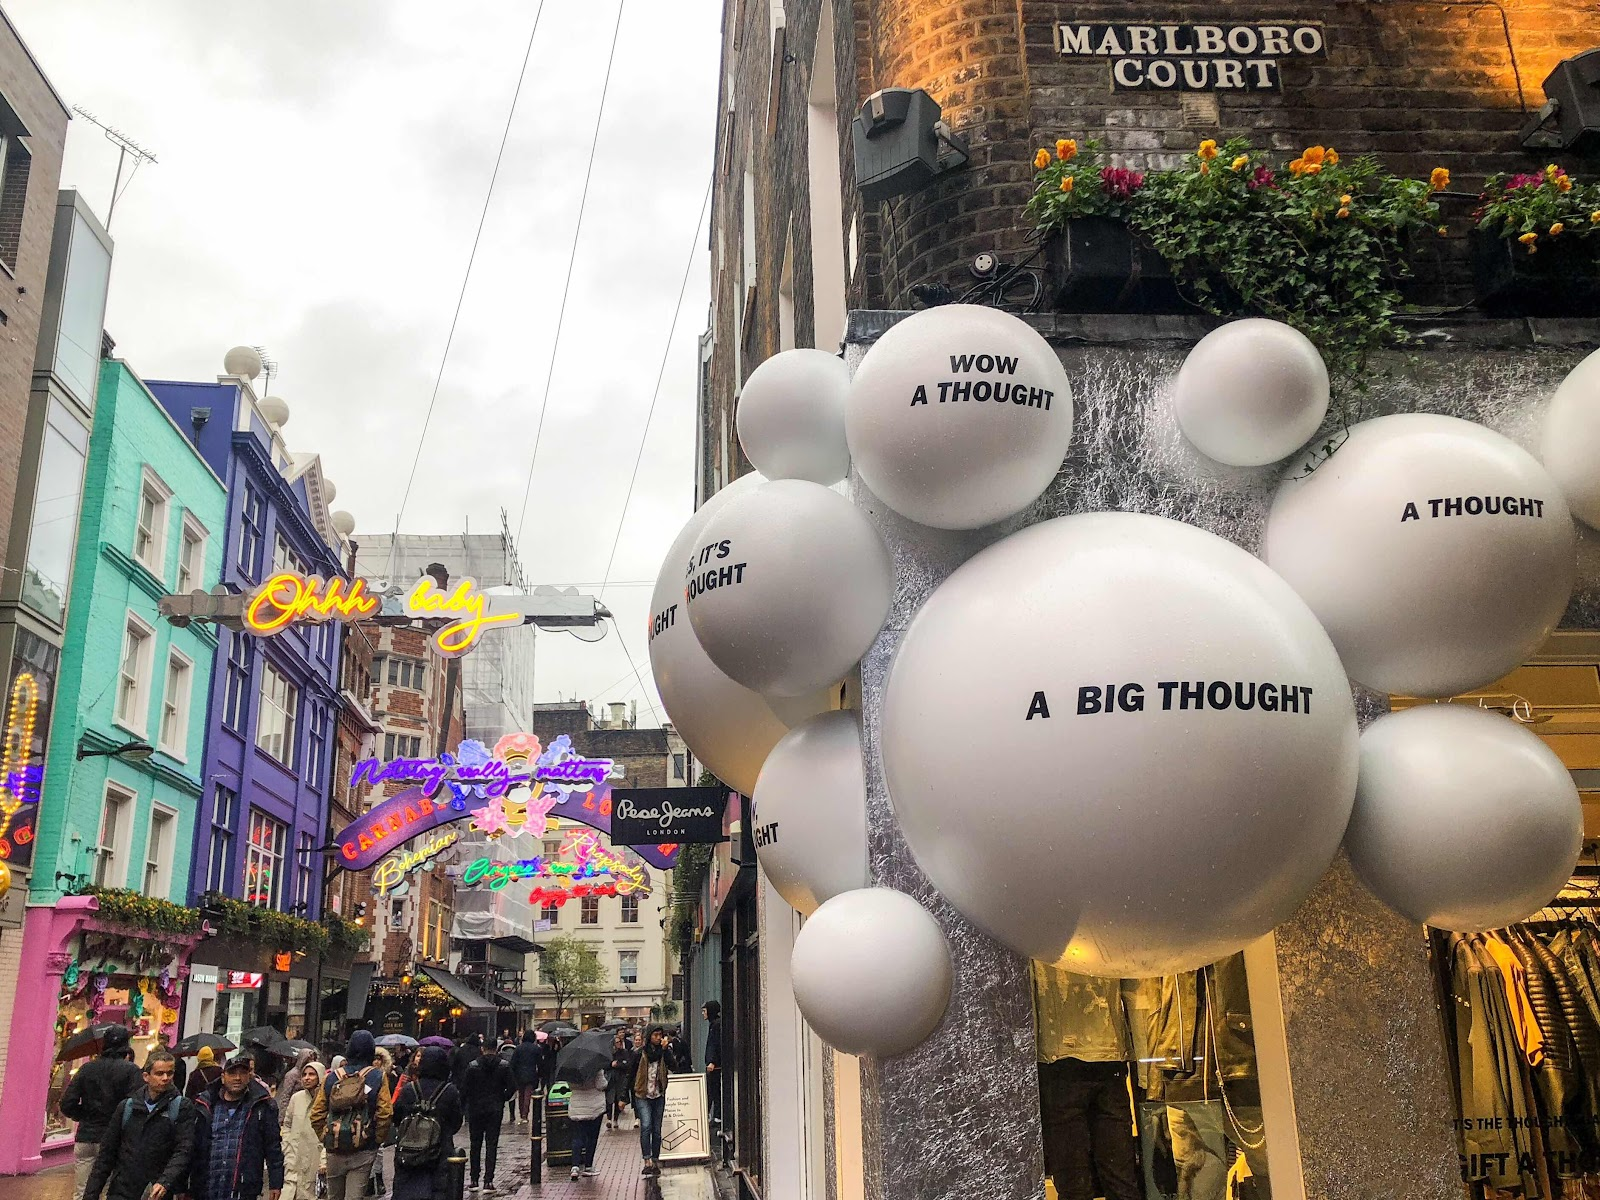 london-lifestyle-blog-top-10-things-to-do-in-soho-london-shopping-on-carnaby-street